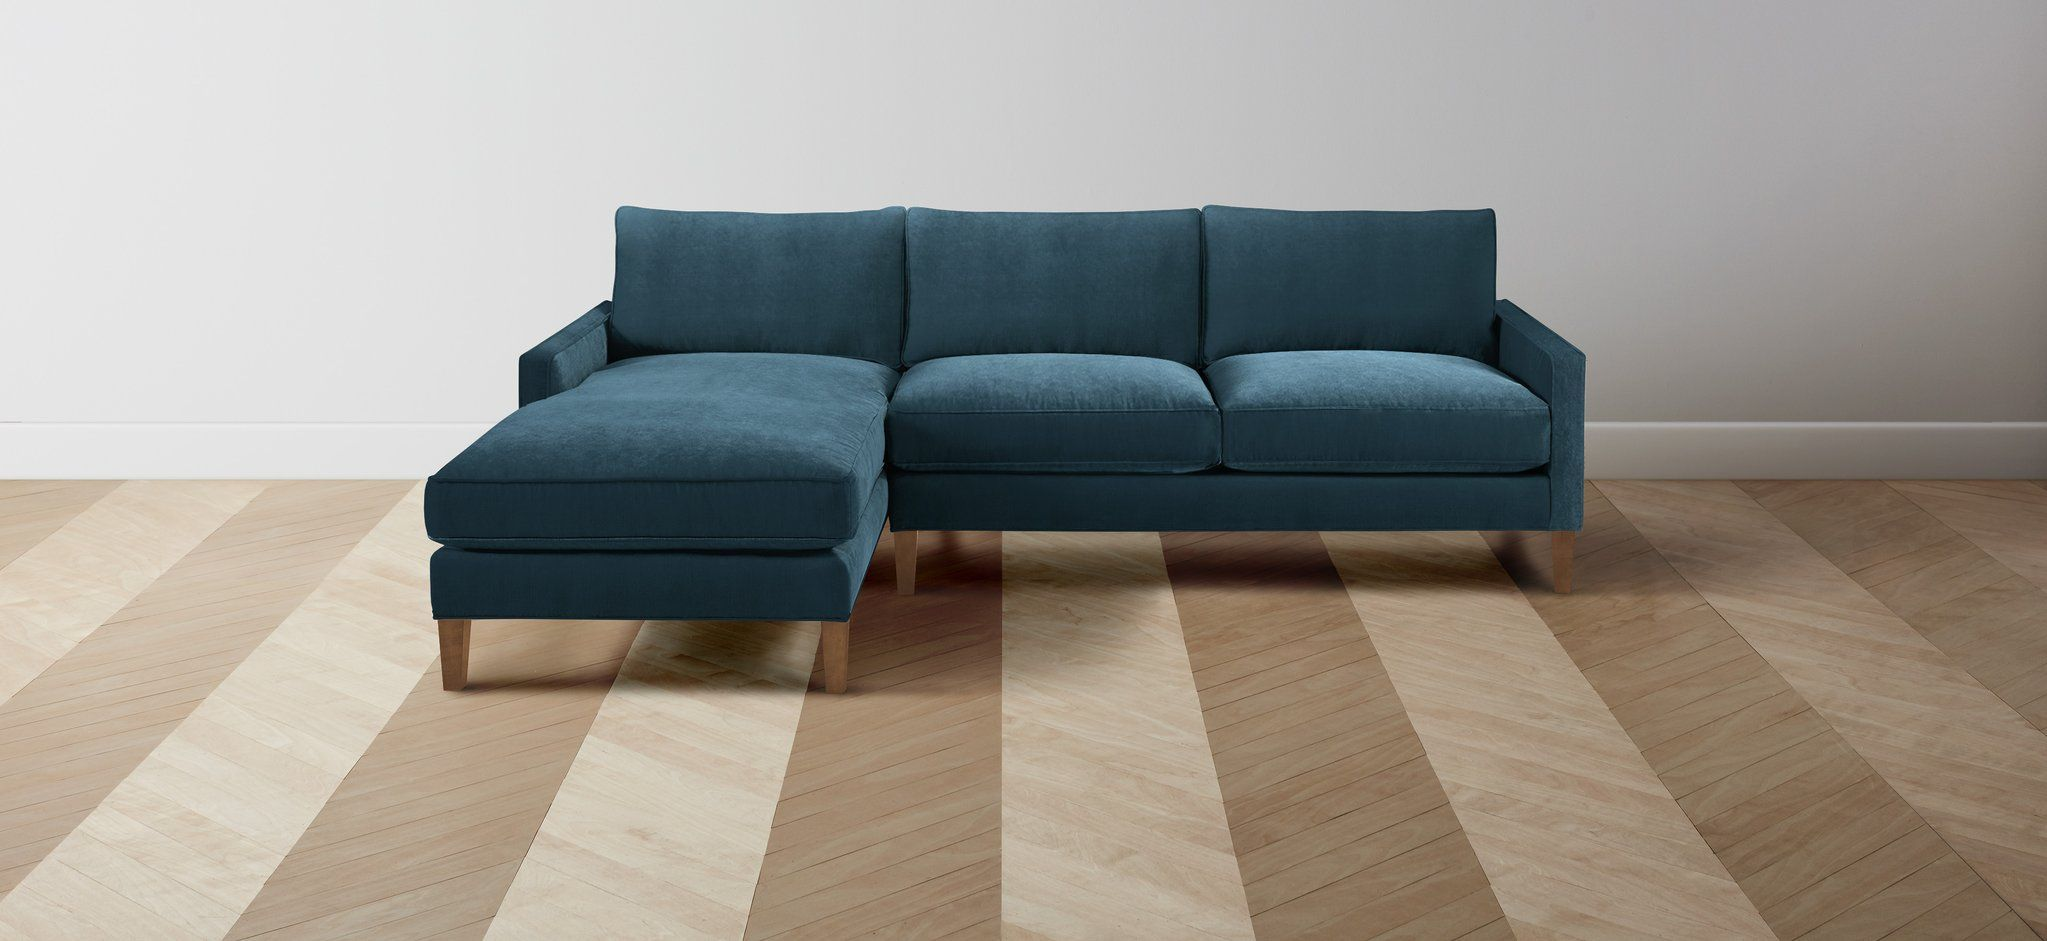 The irving merino dusk sofa